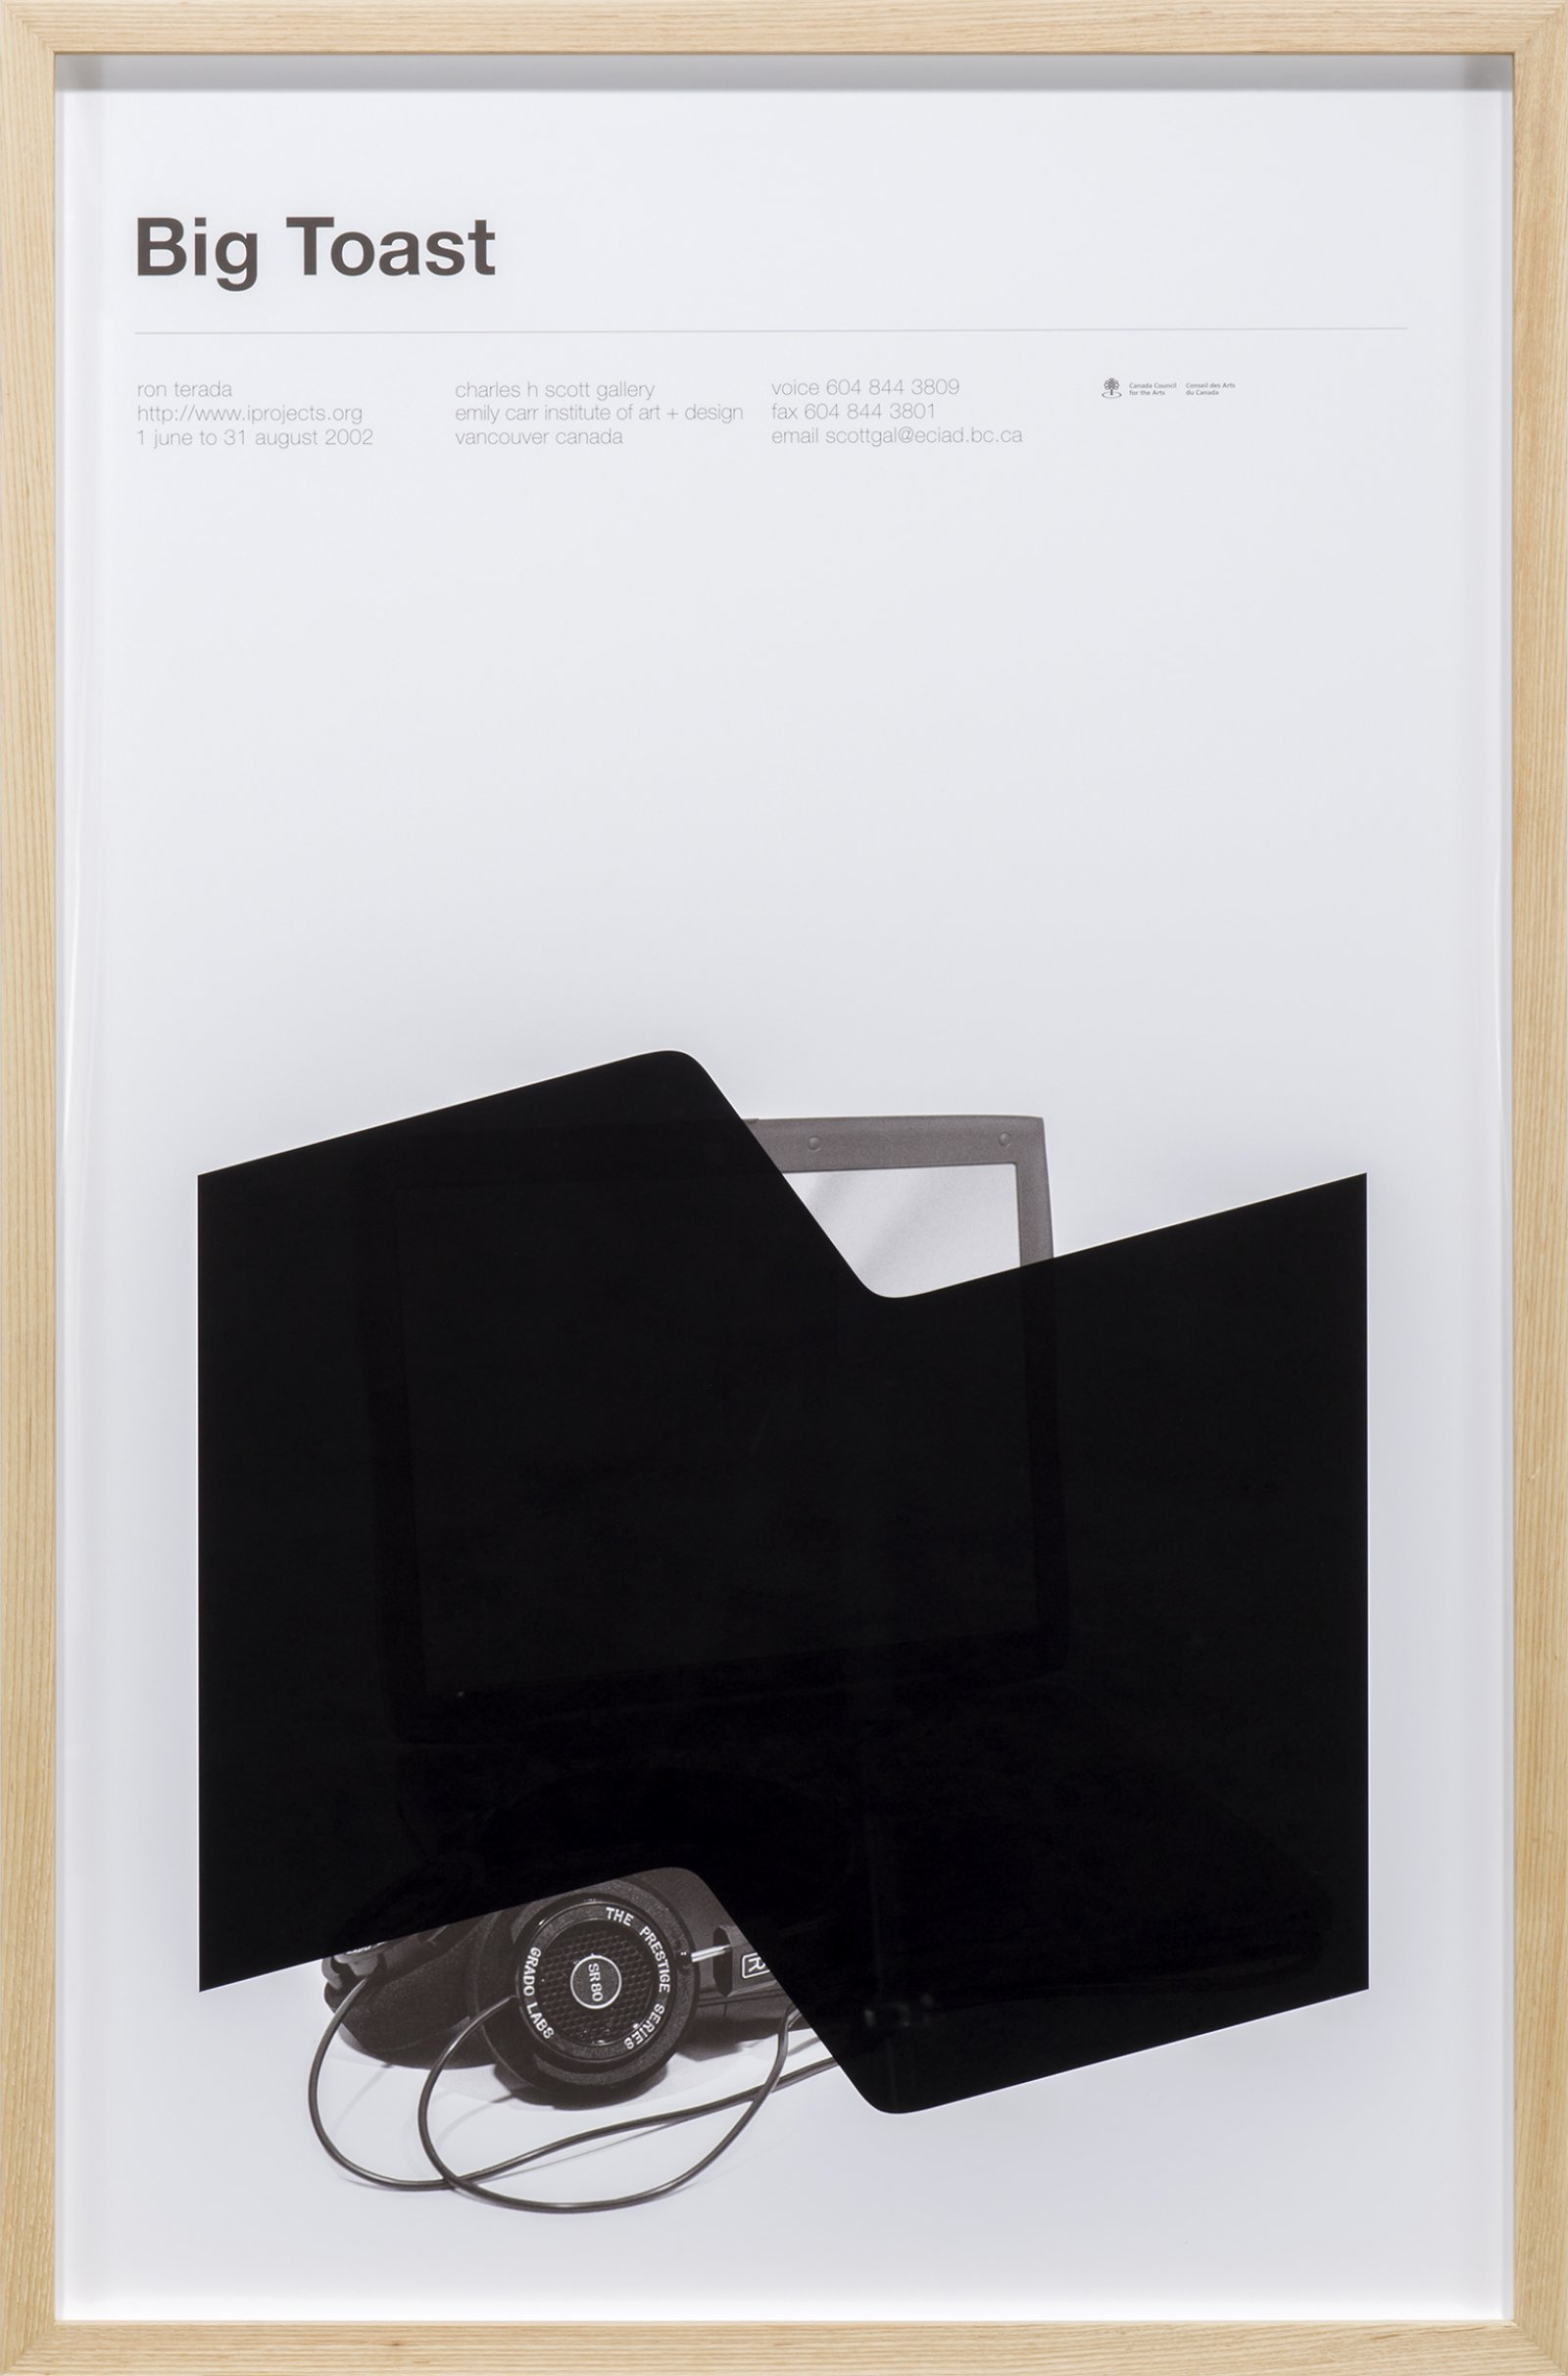 Ron Terada, Big Toast Logo #02, 2016, inkjet print on offset printed poster, 34 x 22 in. (86 x 56 cm) by Ron Terada